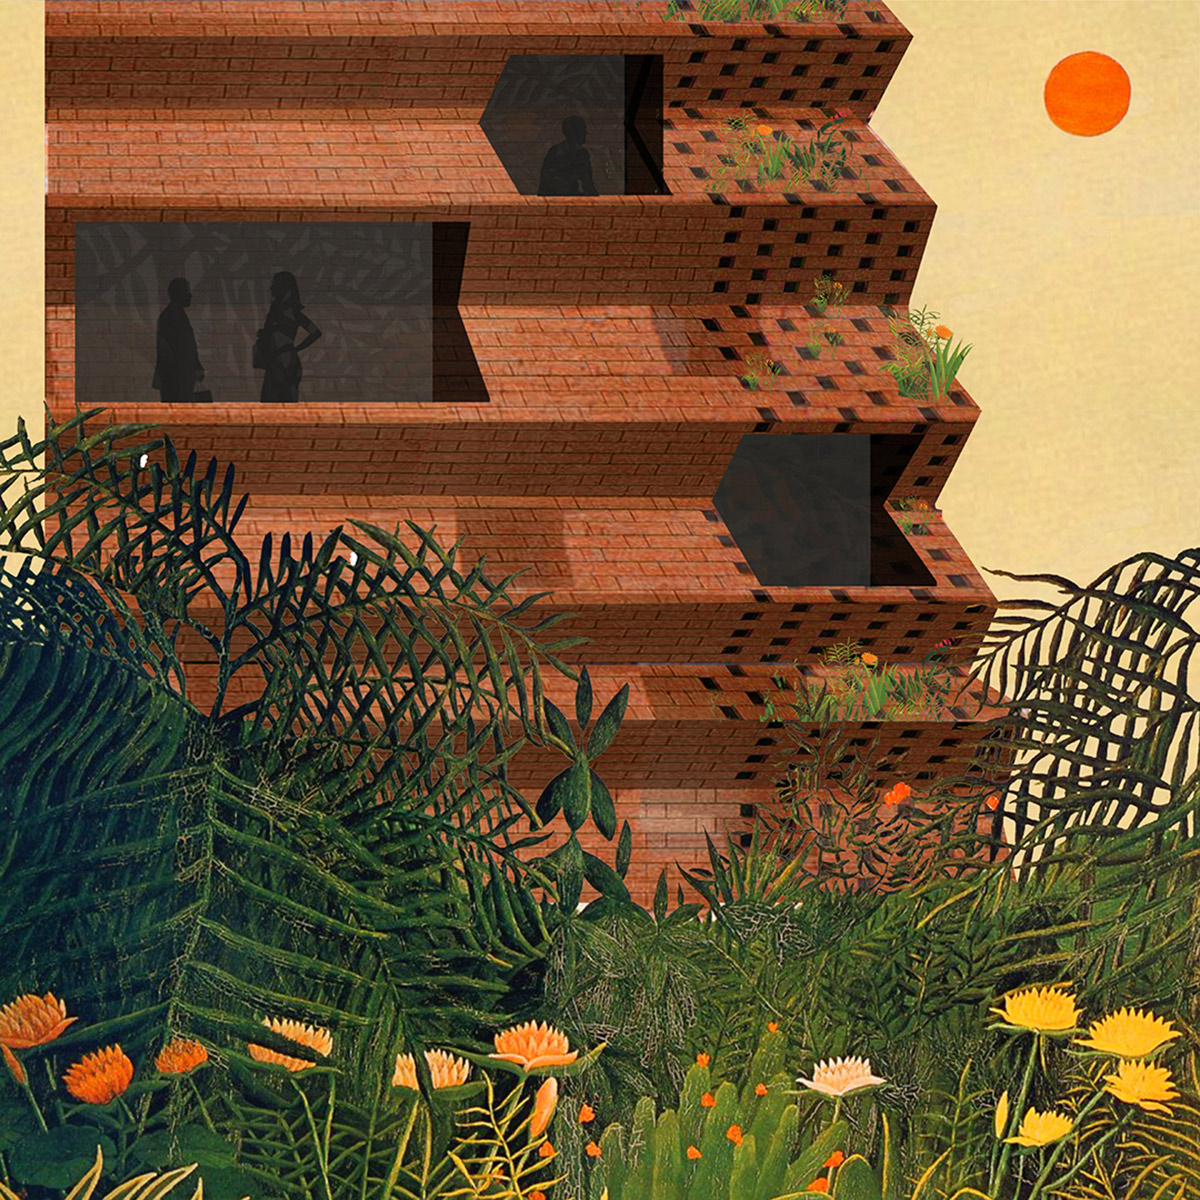 Perspective through the dense vegetation of UI of one of the nine housing and study towers embedded in the landscape